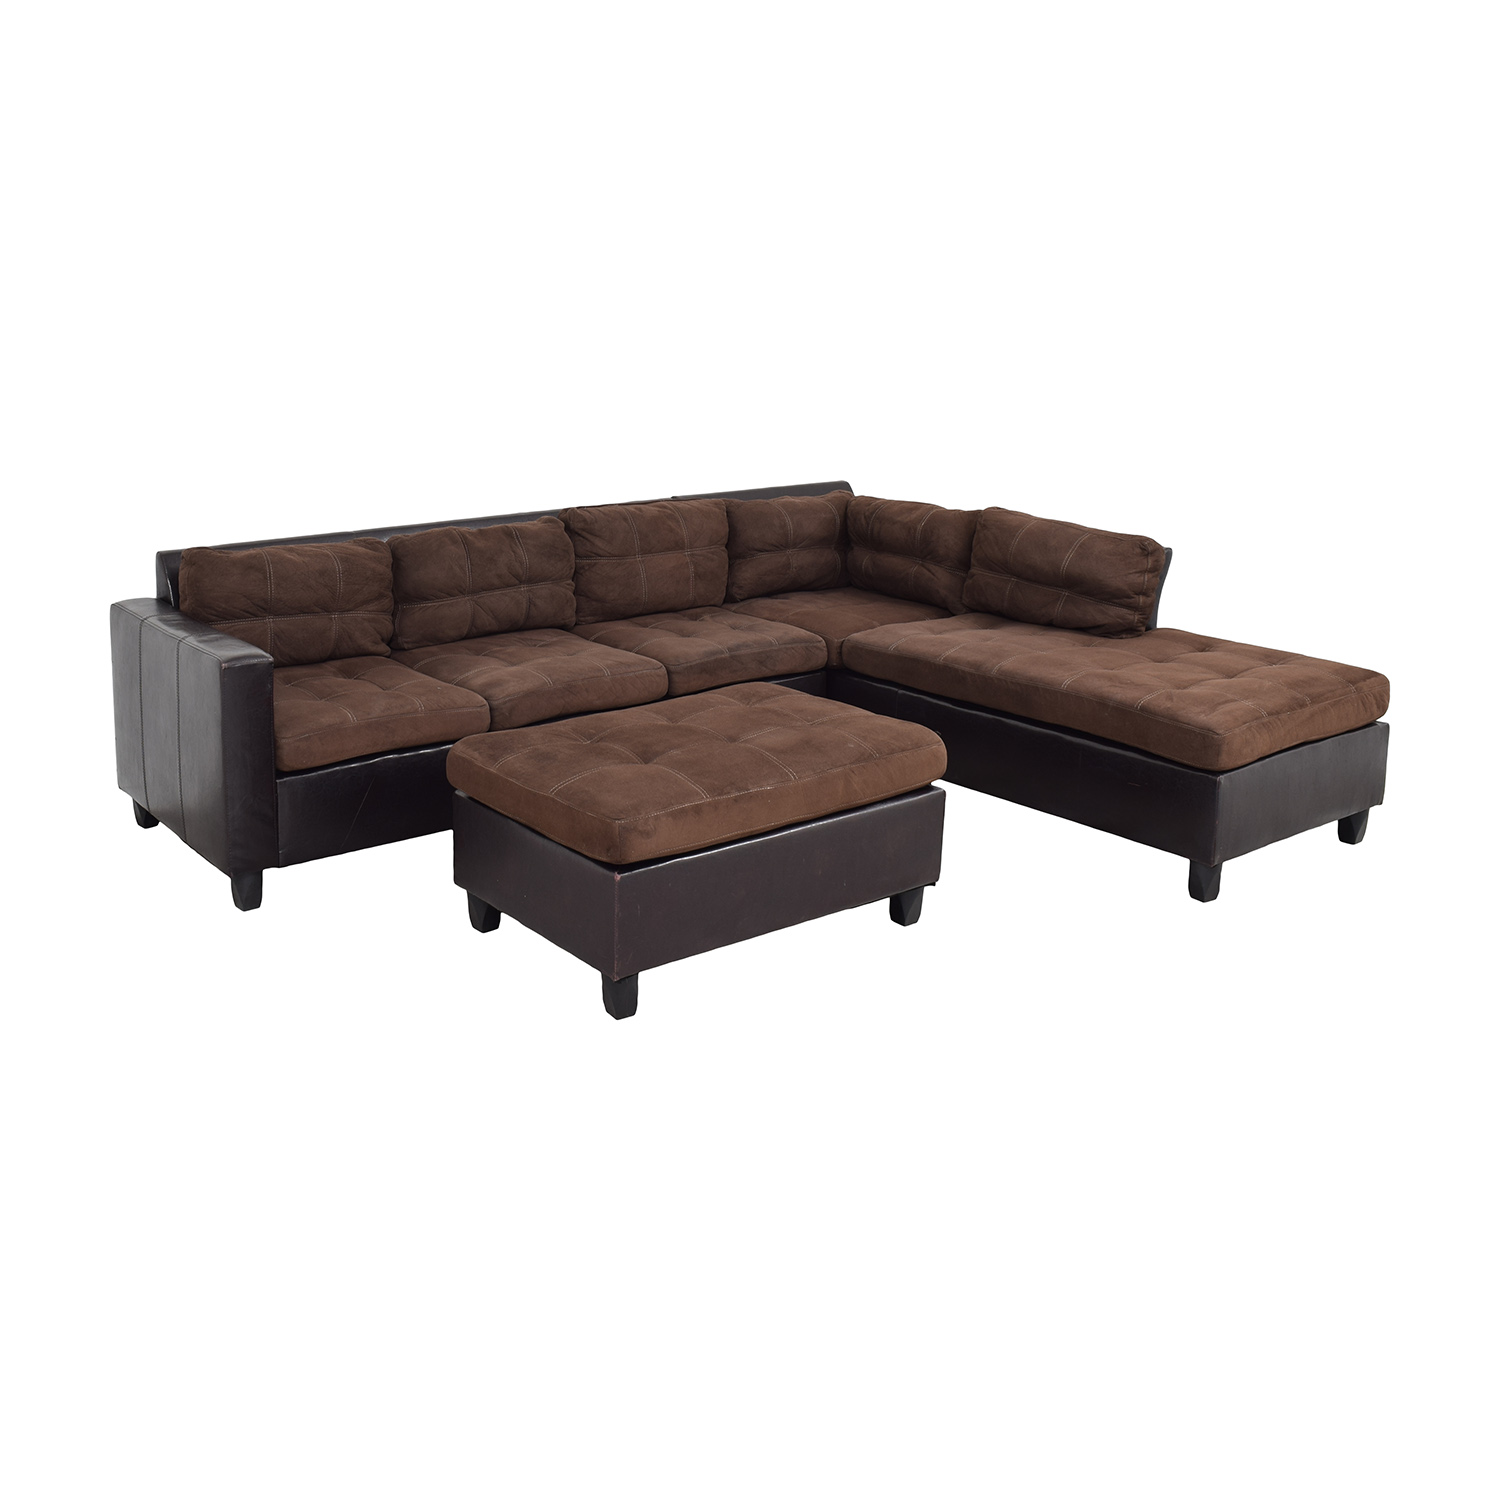 34% OFF - Chaise Sectional Sofa and Ottoman / Sofas